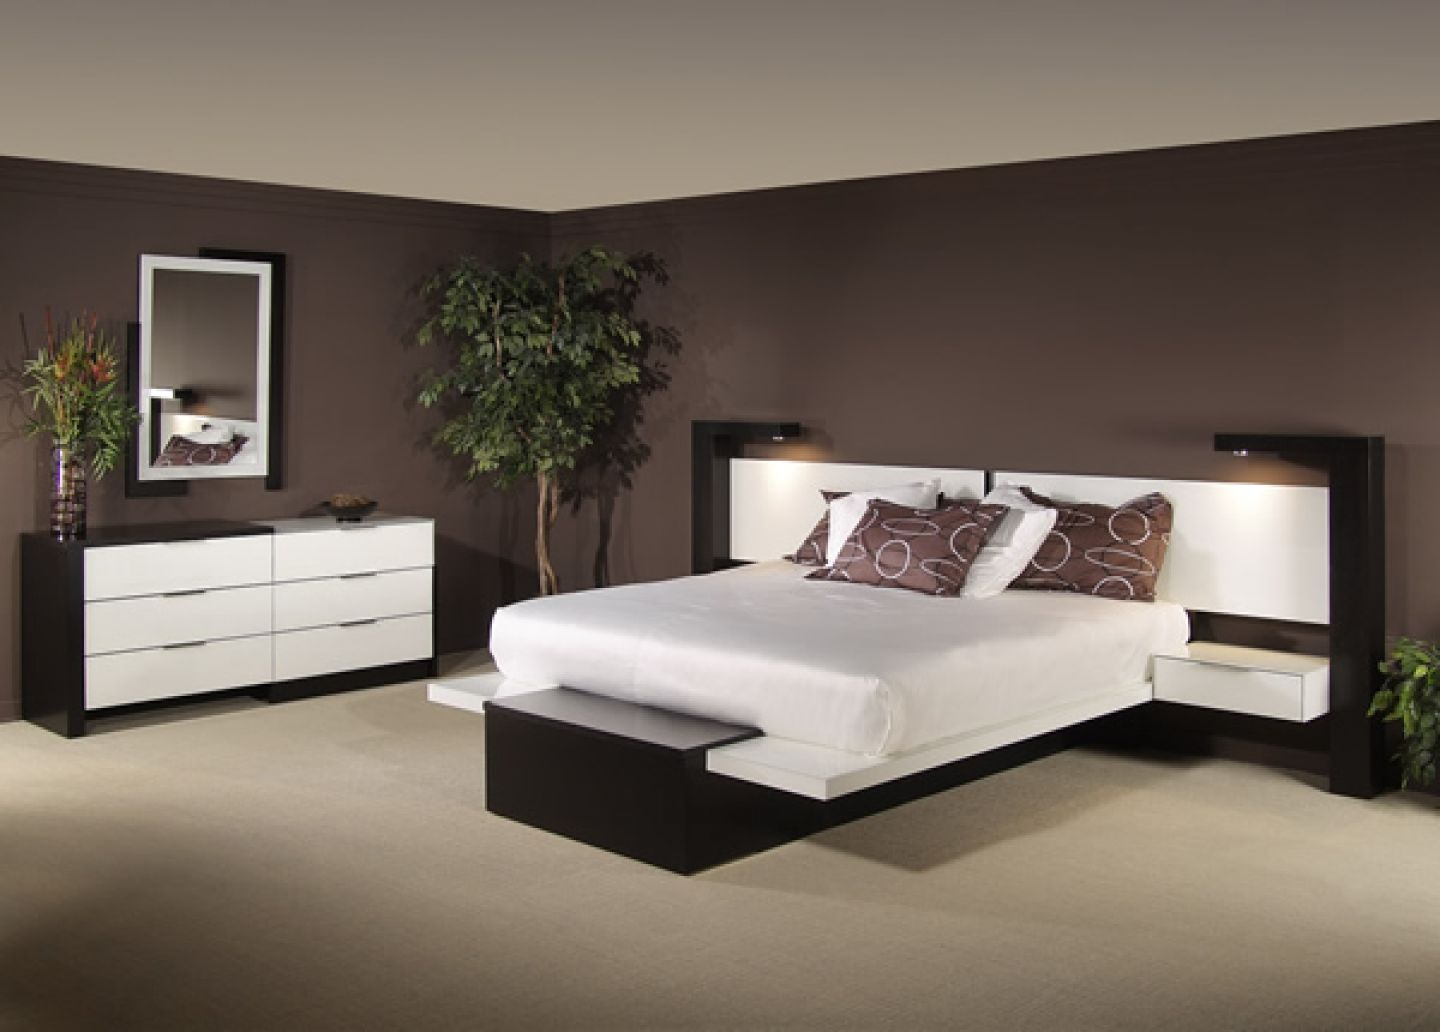 Furniture Design Modern best contemporary modern bedroom furniture gallery - room design